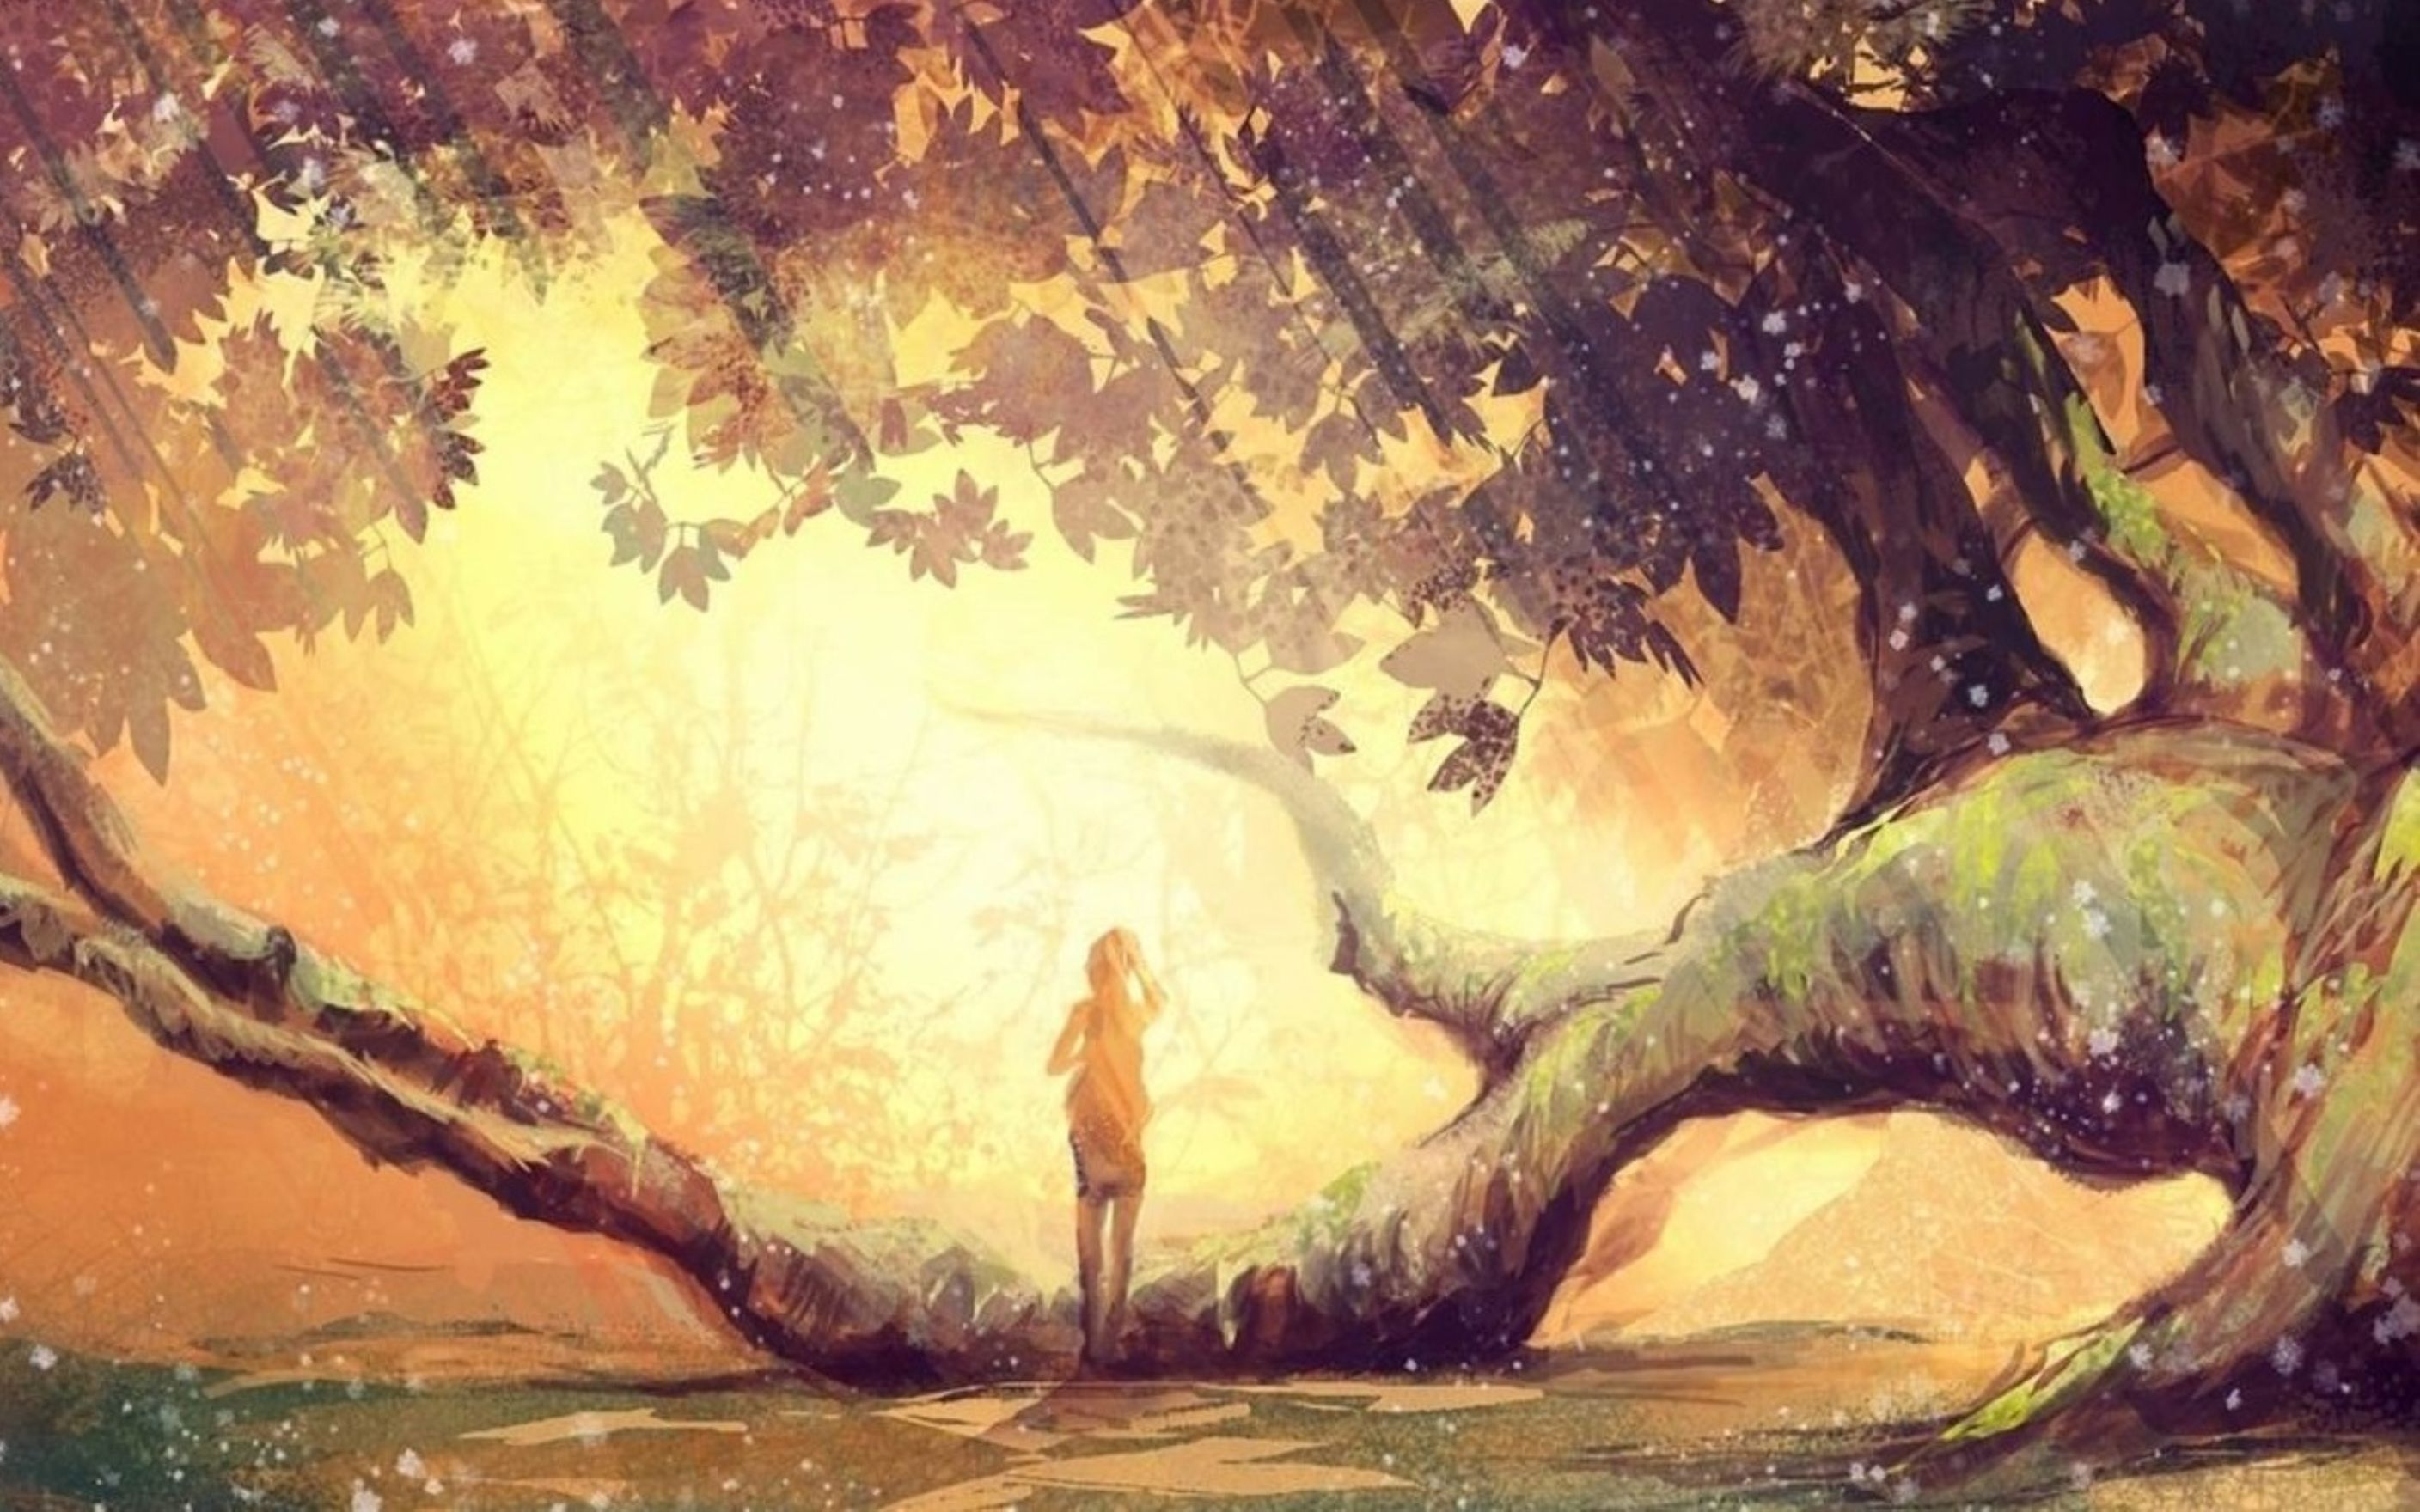 Girl alone fantasy art tree wallpaper